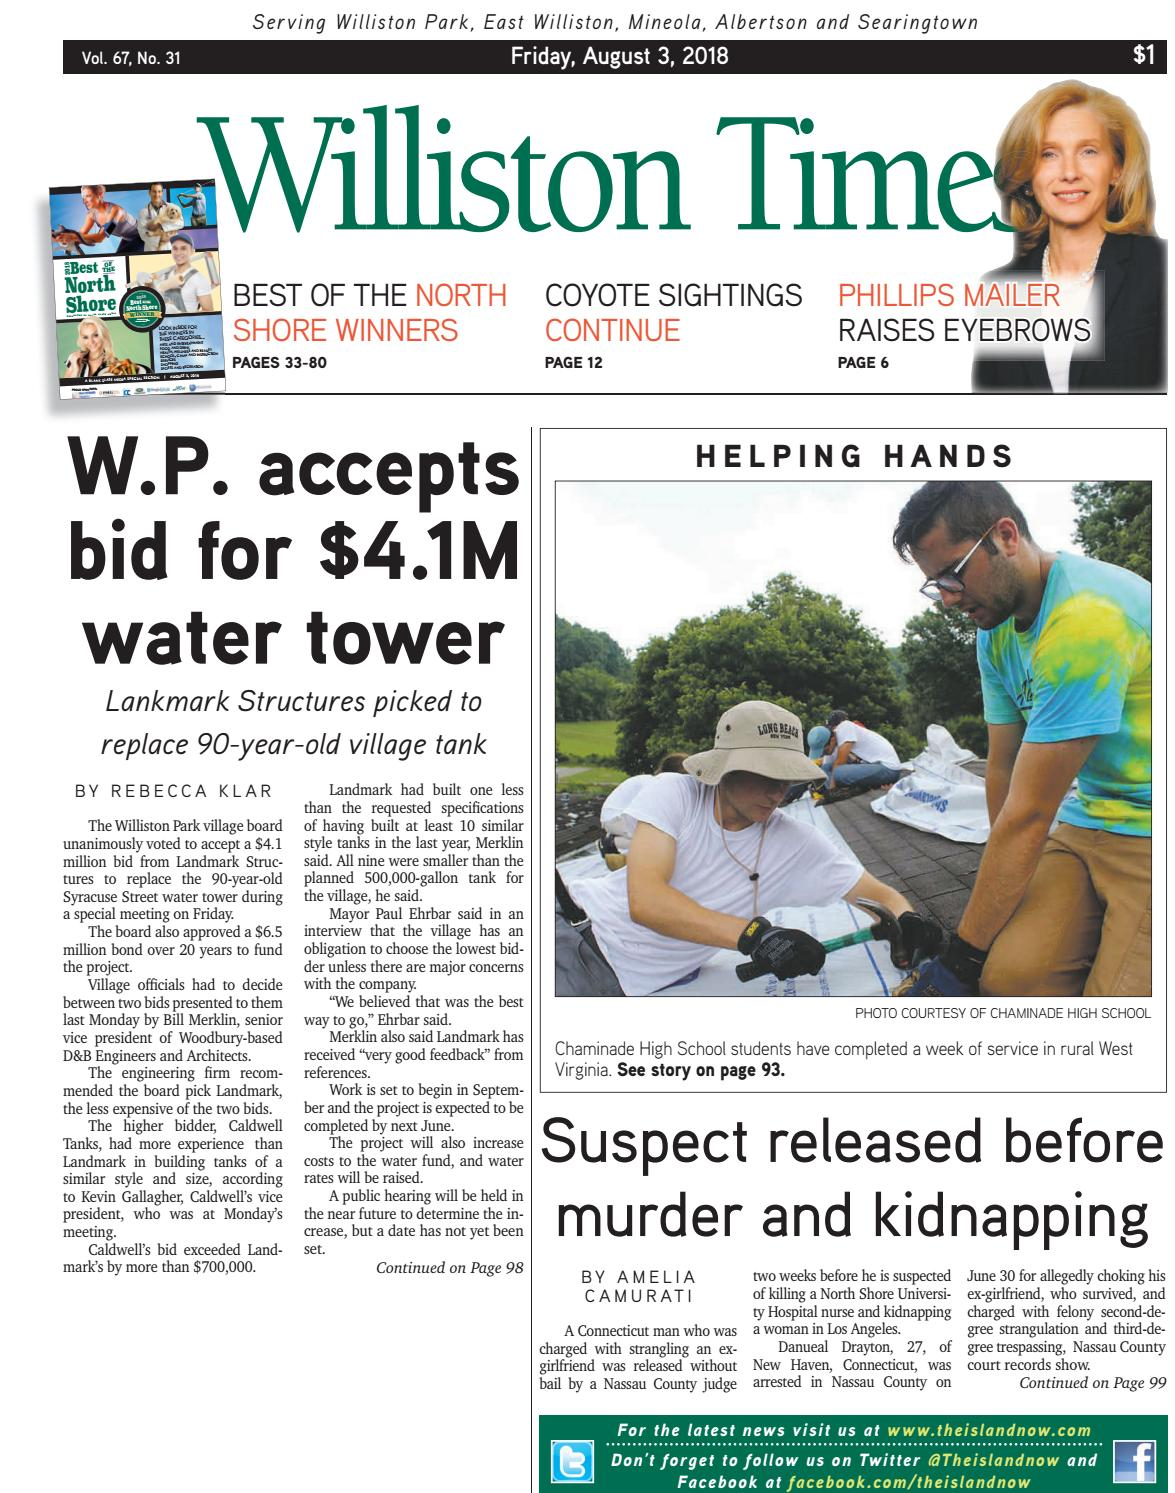 5159363f2205 Williston times 08.03.18 by The Island Now - issuu